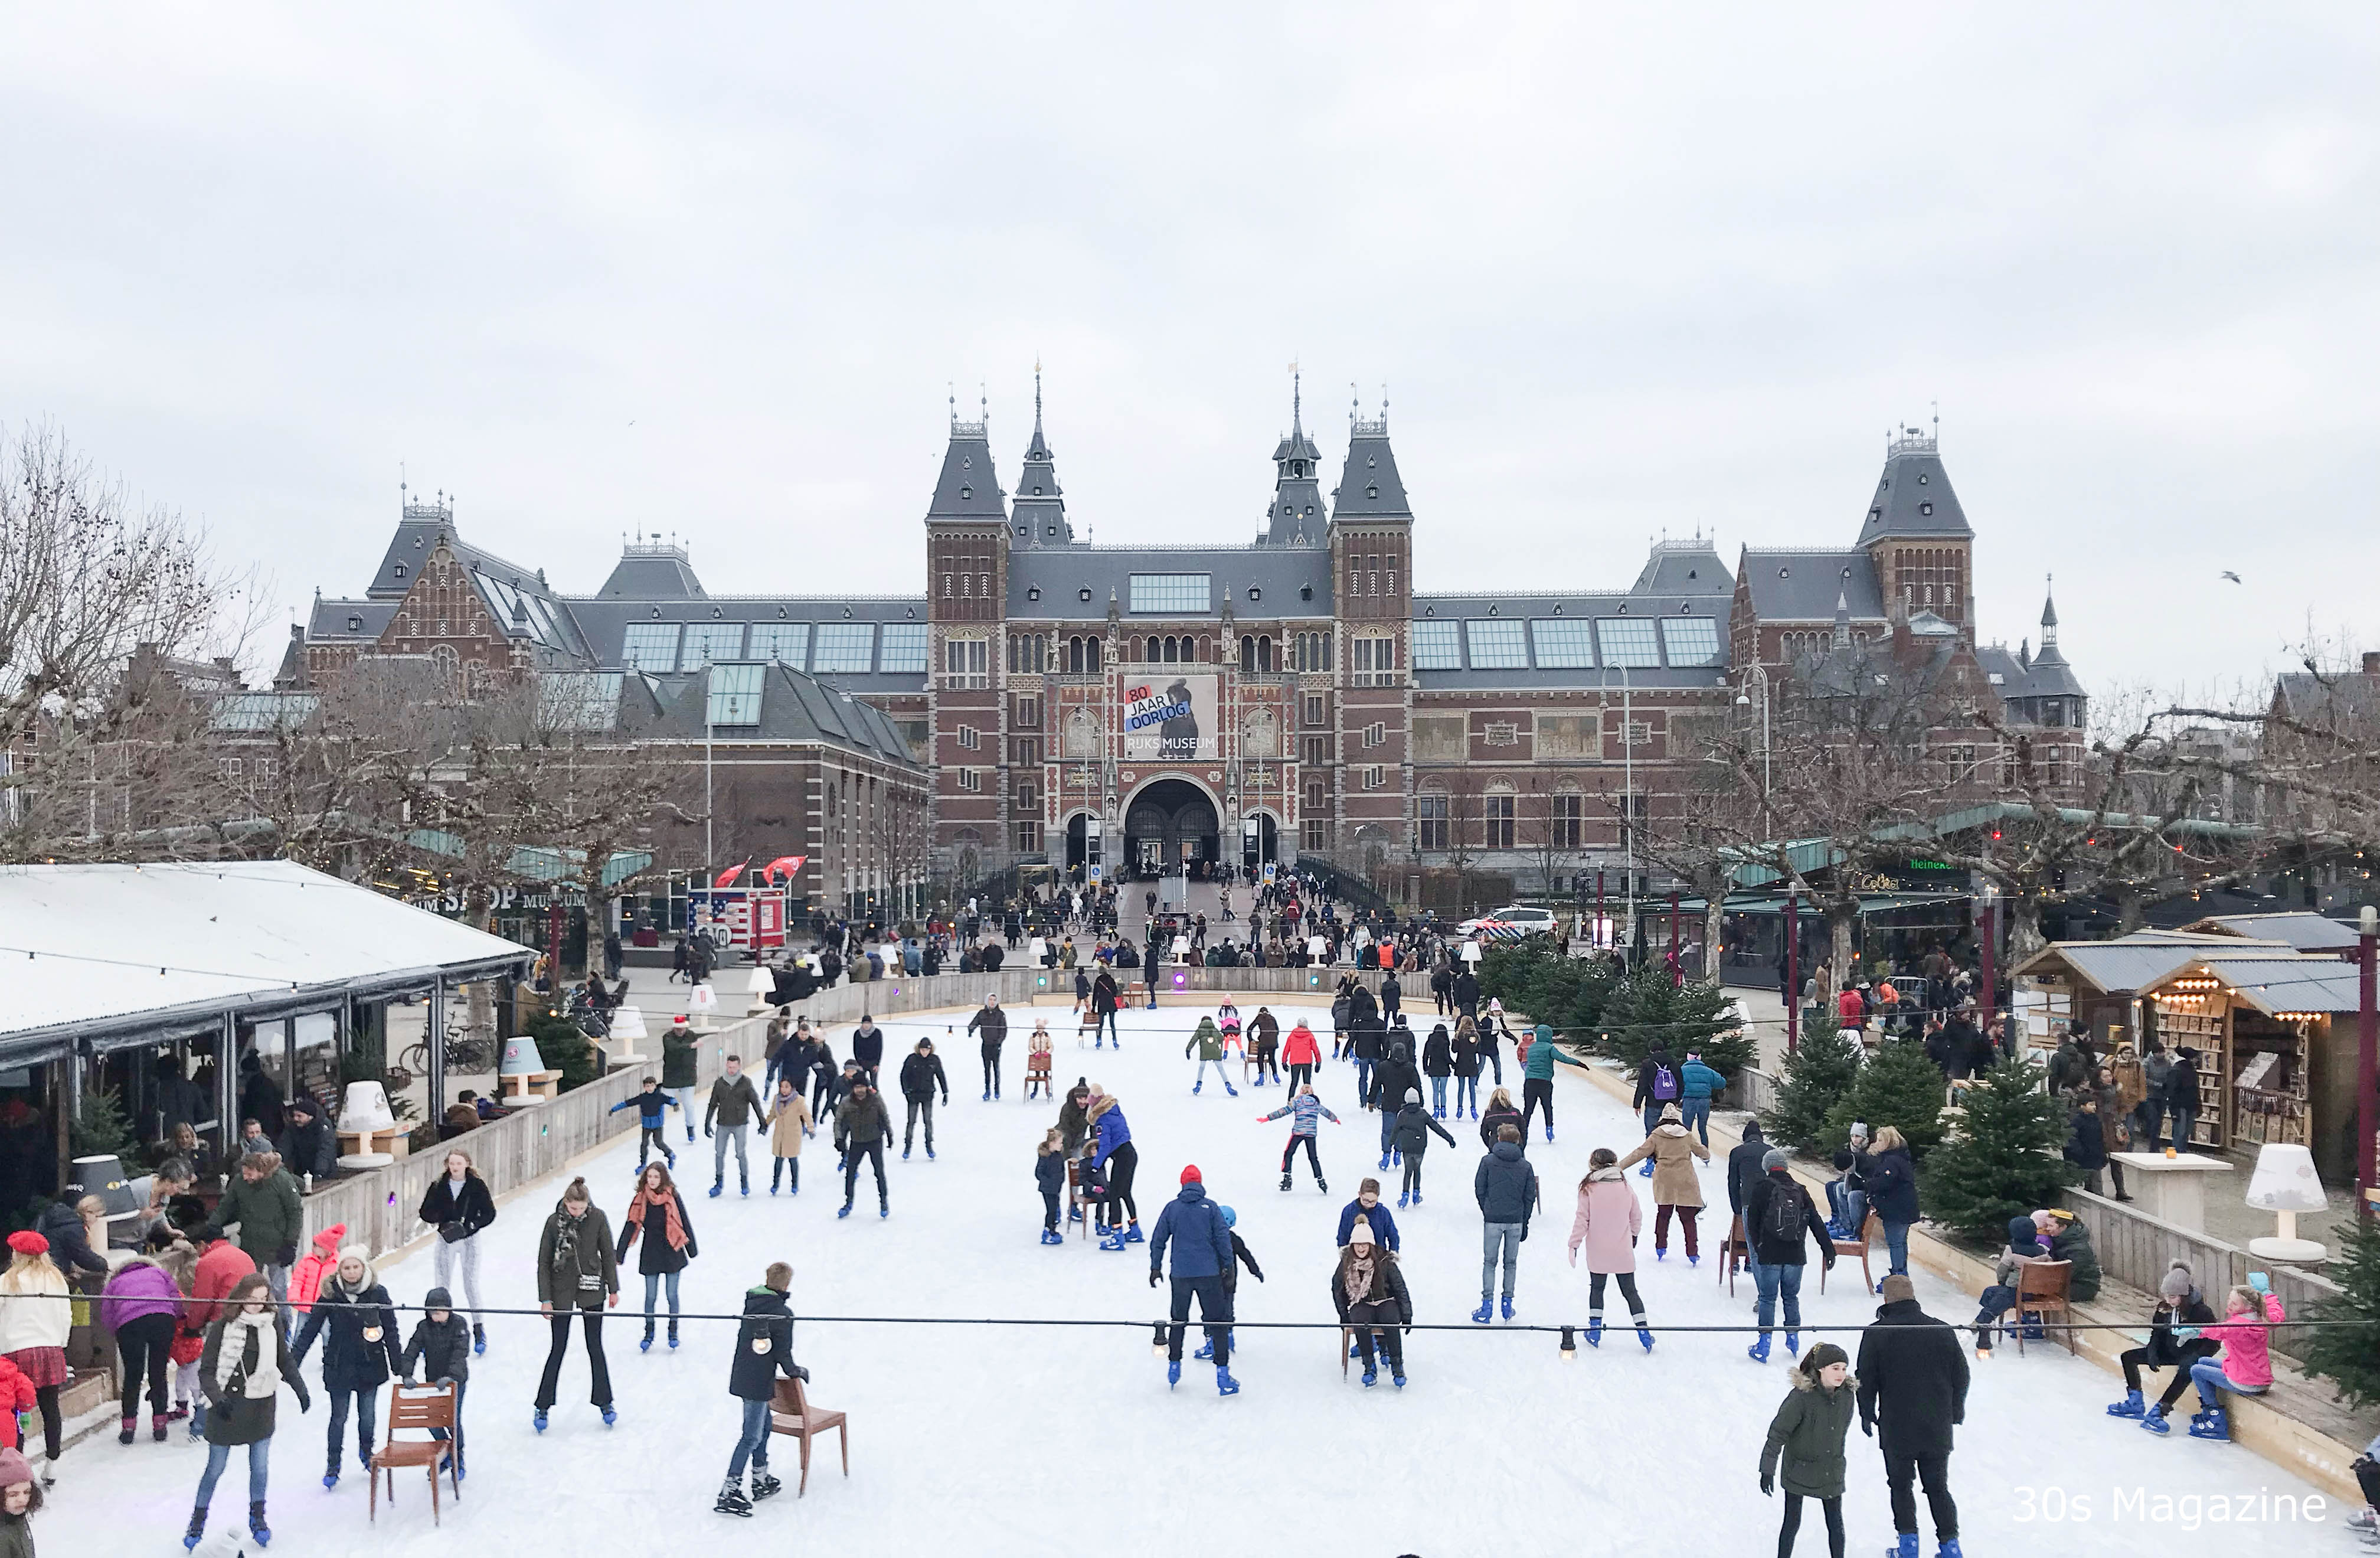 30s Magazine - The Best of Amsterdam at Christmas Time